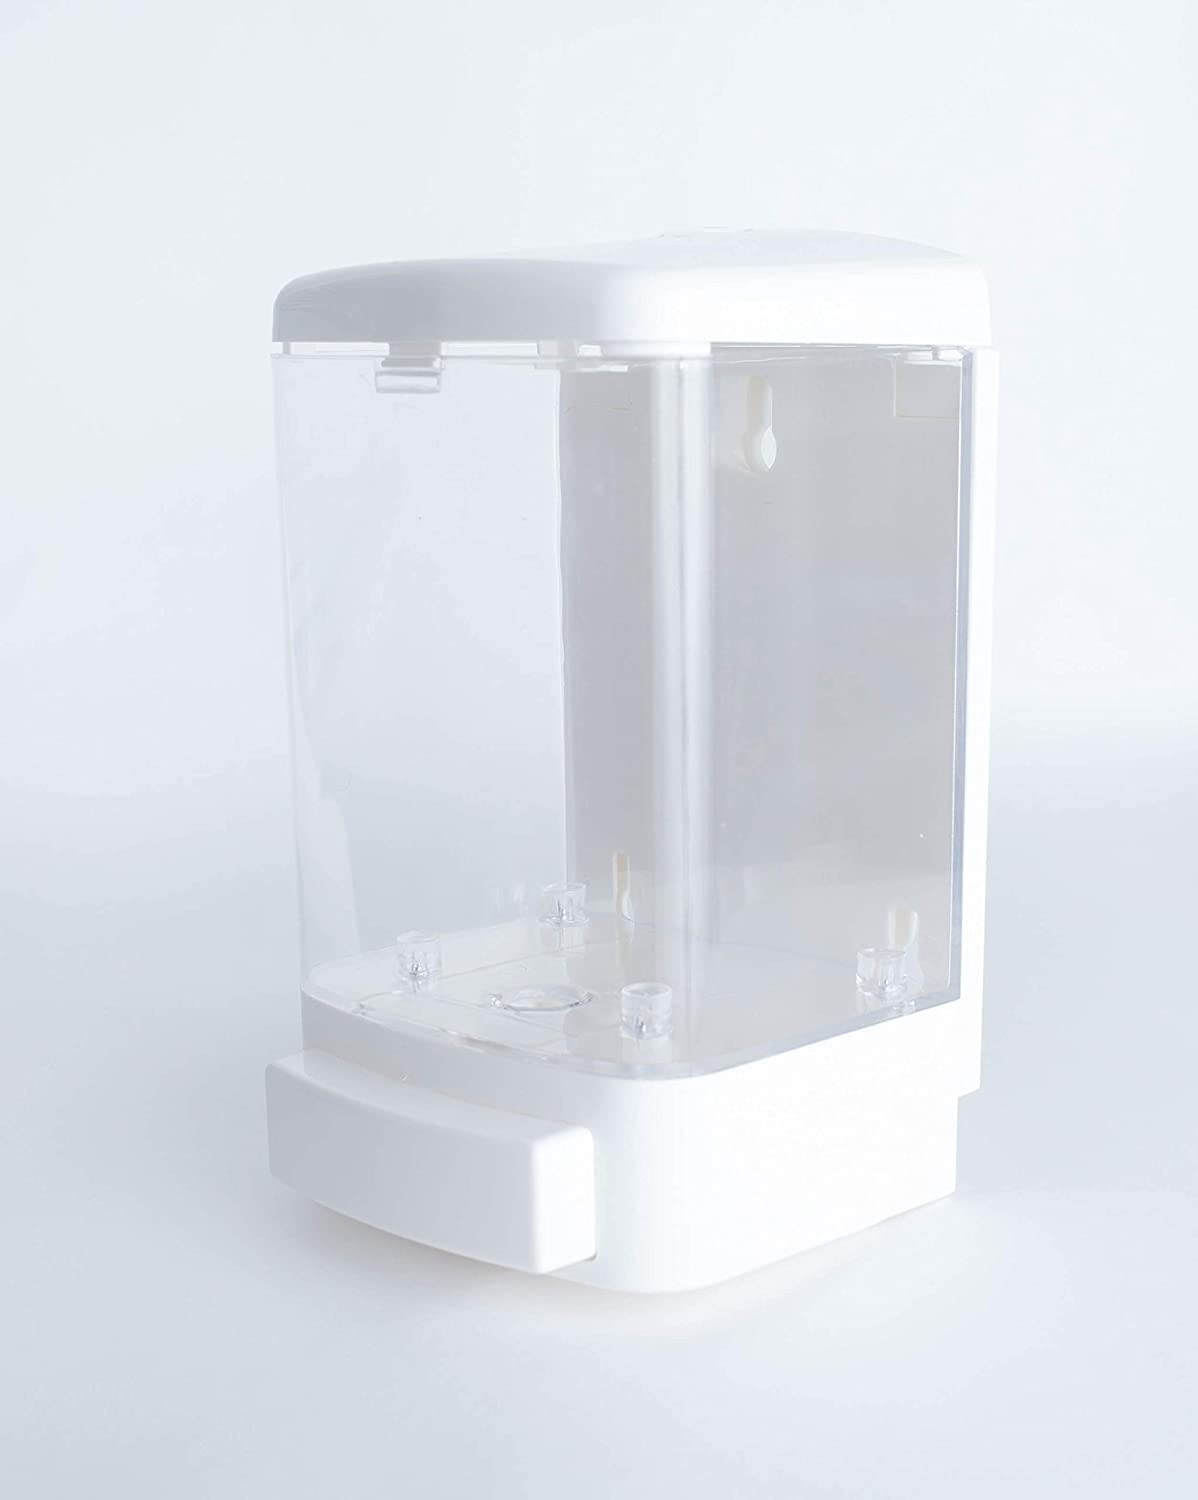 Vanilla Brick Soap Dispenser Easily Wall Mount in Your Bathroom, Shower, Kitchen, RV, Office or Commercial Building. Perfect for Hand Soap, Shampoo, Conditioner, Body Wash 33.8 oz (1000ml) White Clear